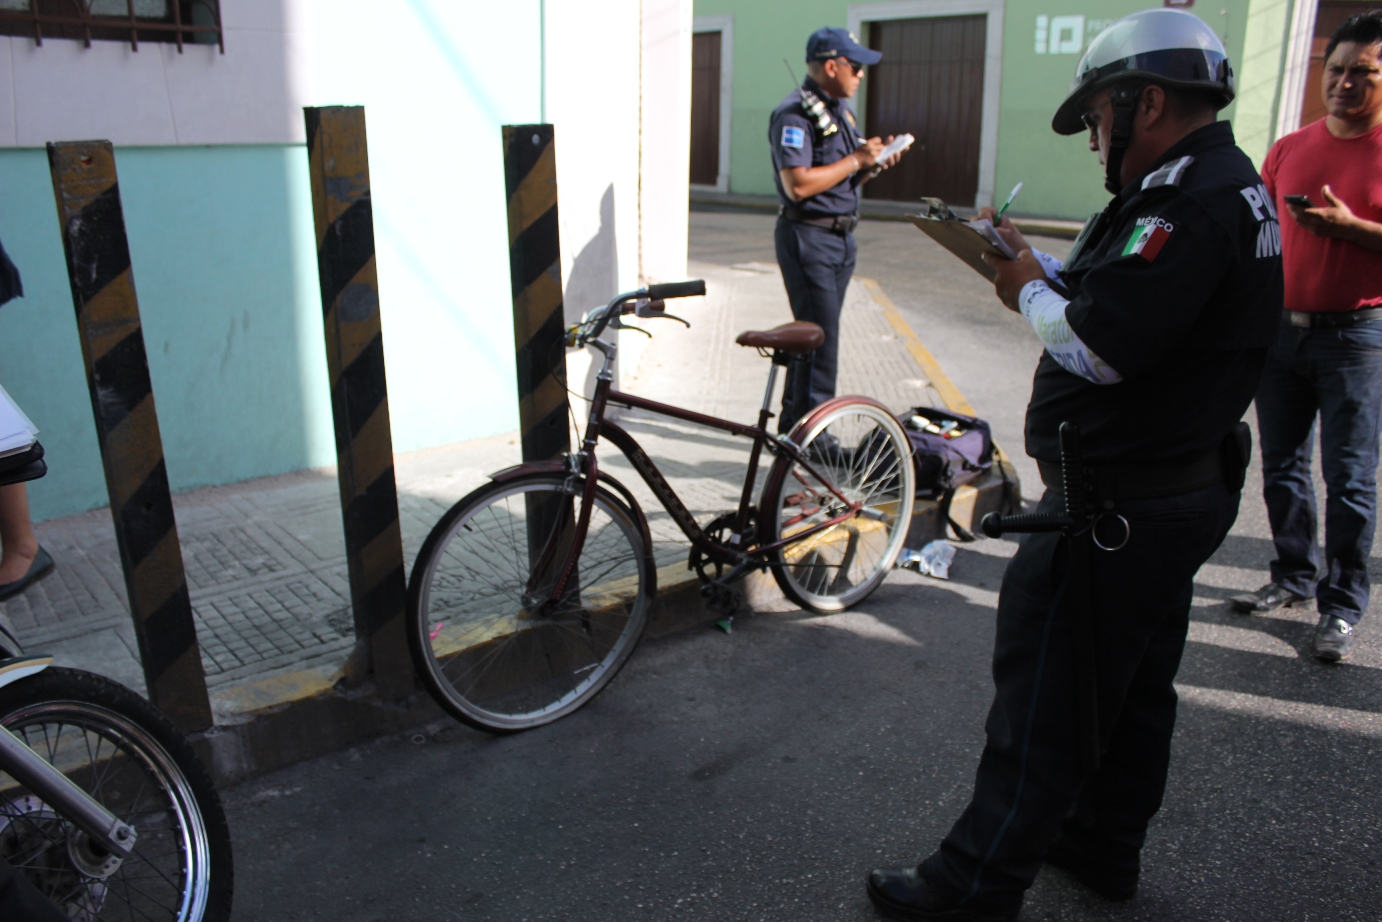 Atropellan a ciclista extranjera